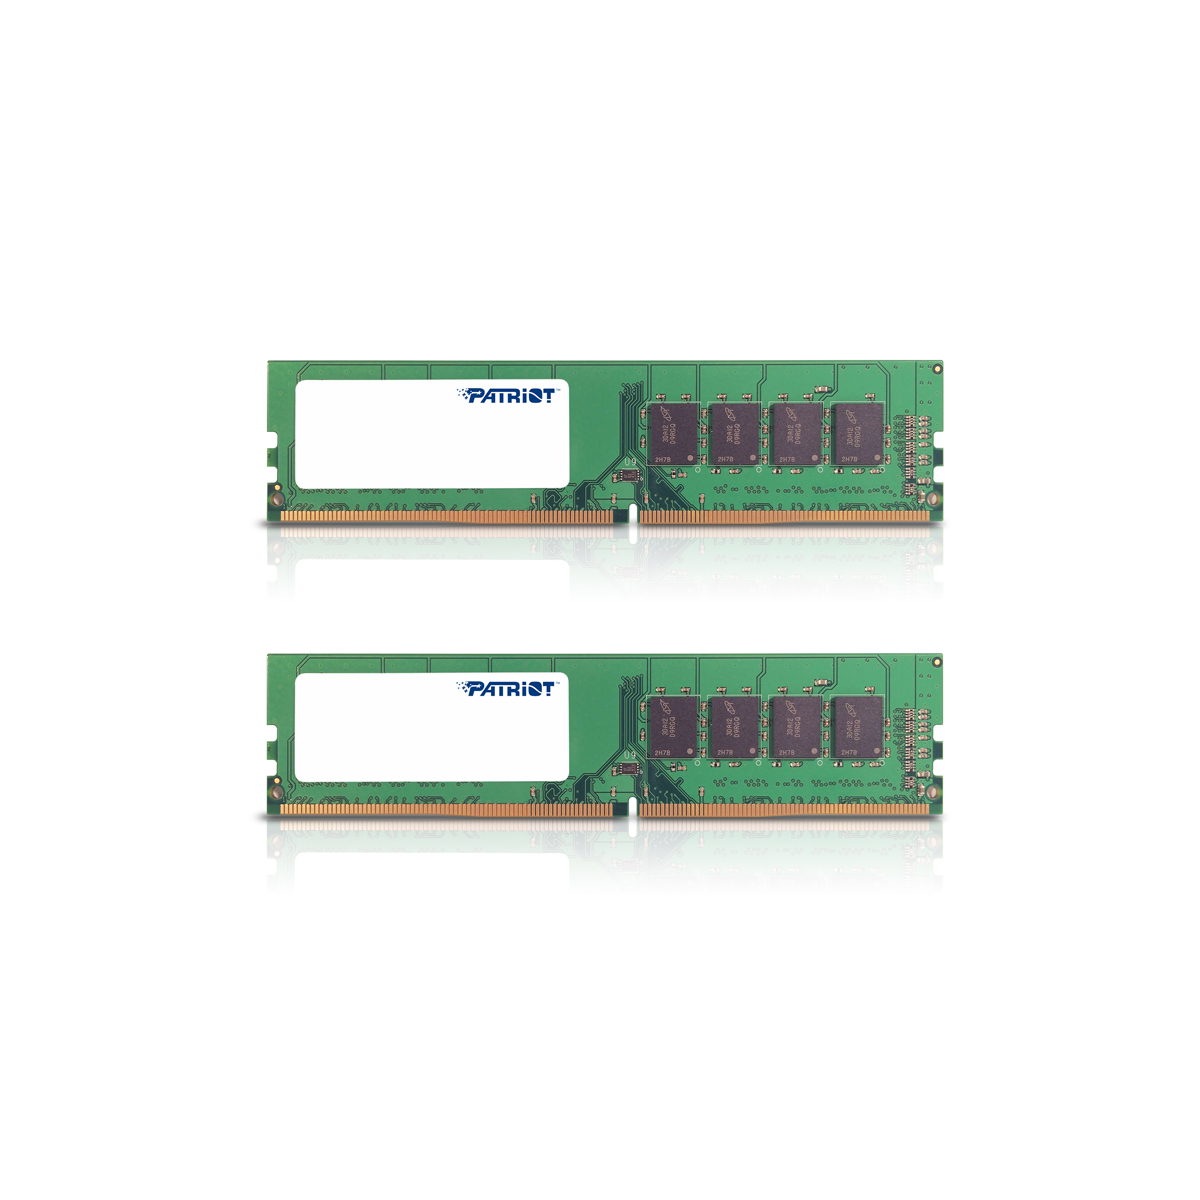 32GB DDR4-2133MHz Patriot CL15, kit 2x16GB